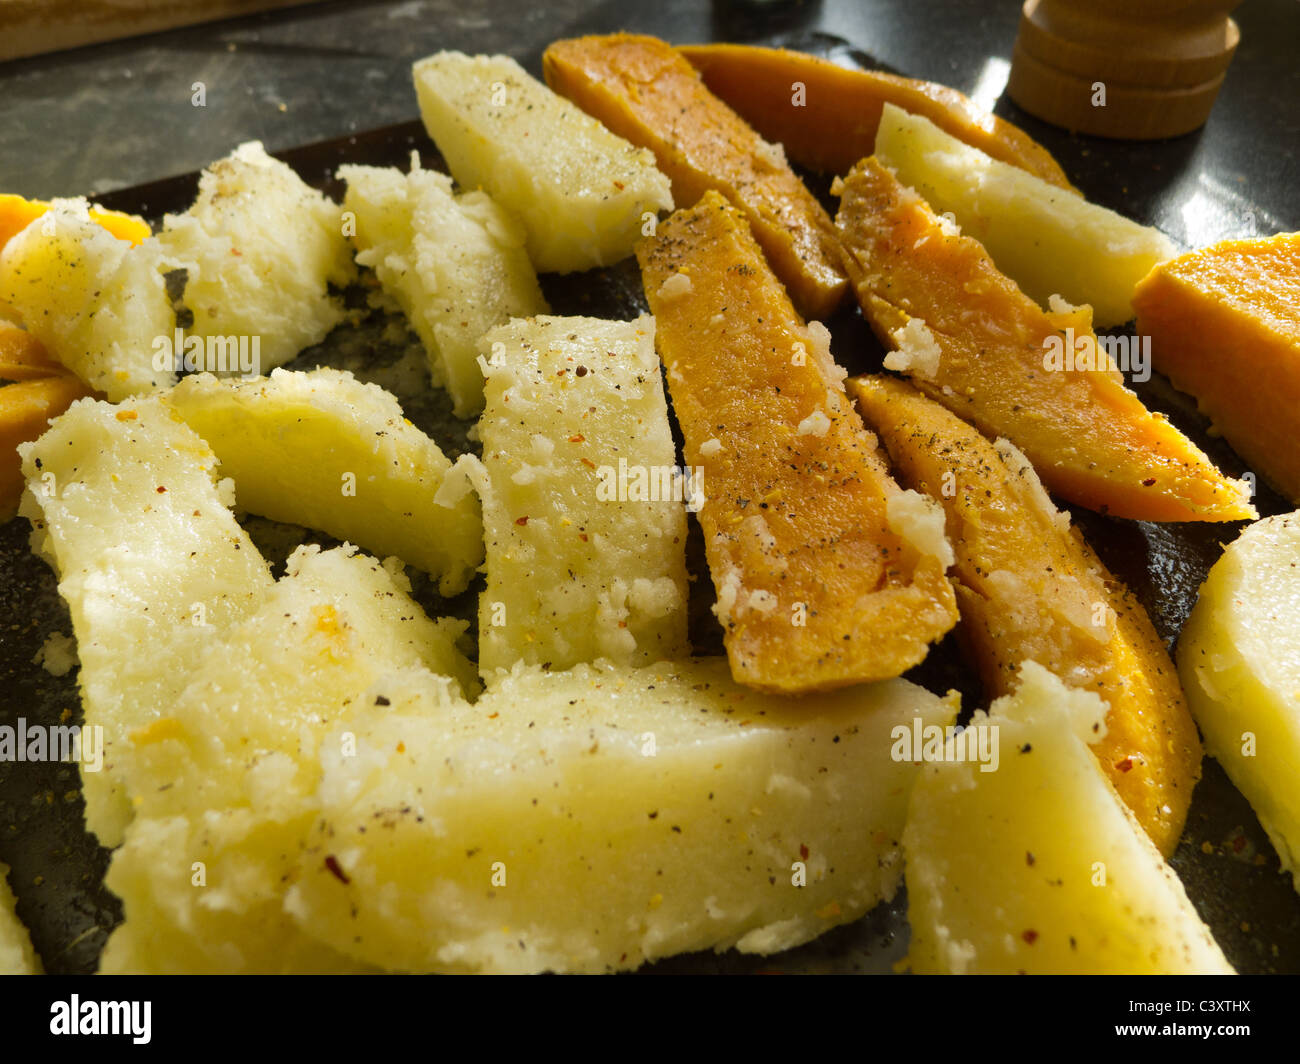 Home-made chips on baking sheet ready for cooking - Stock Image